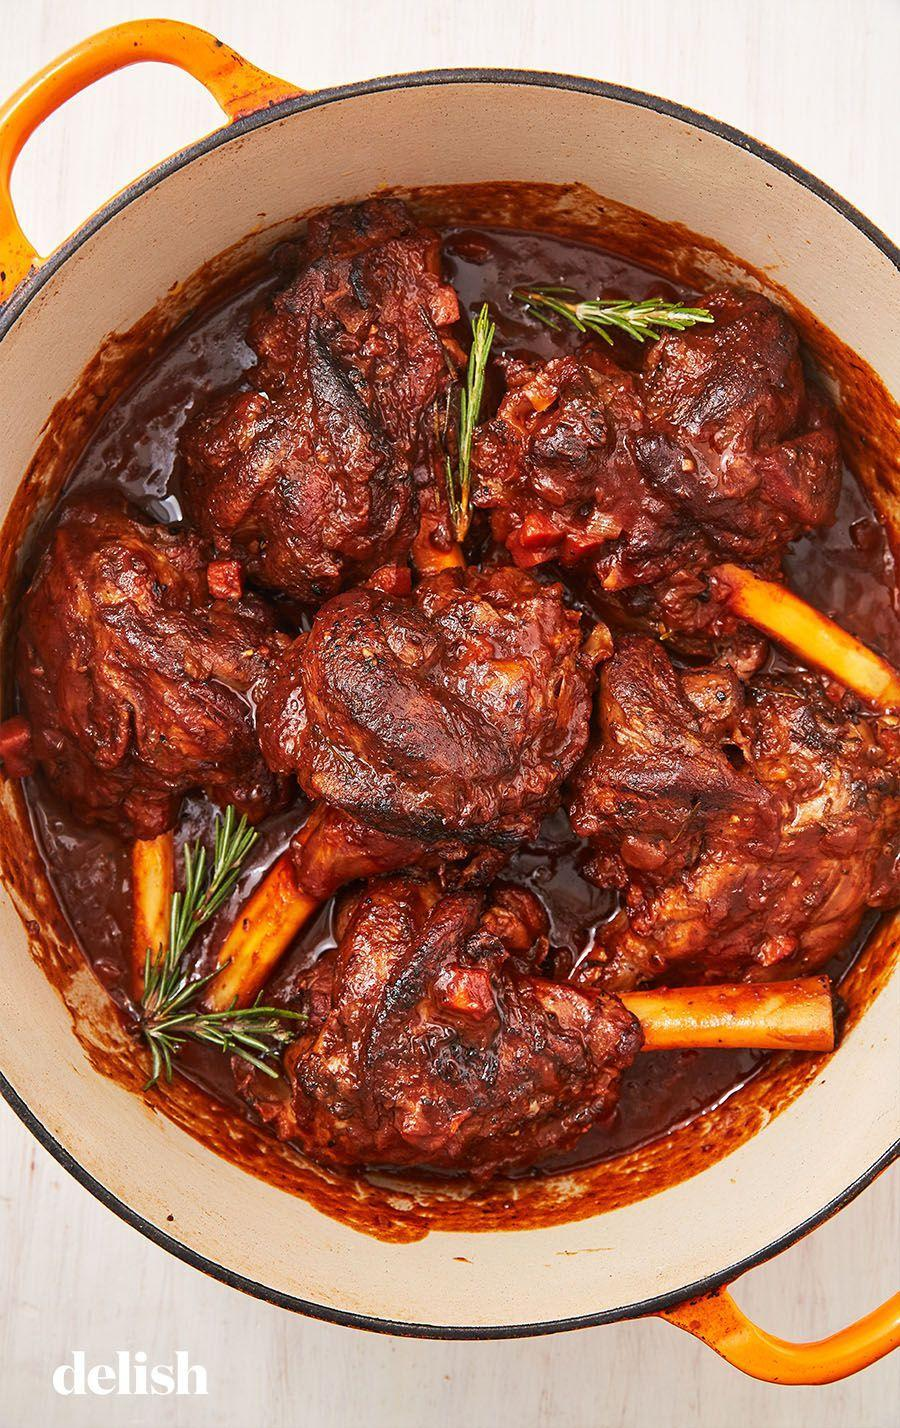 """<p>Braising lamb shanks might sound a little intimidating, but honestly, it couldn't be easier—we swear.</p><p>Get the recipe from <a href=""""https://www.delish.com/cooking/recipe-ideas/a26813209/braised-lamb-shank-recipe/"""" rel=""""nofollow noopener"""" target=""""_blank"""" data-ylk=""""slk:Delish"""" class=""""link rapid-noclick-resp"""">Delish</a>.</p>"""